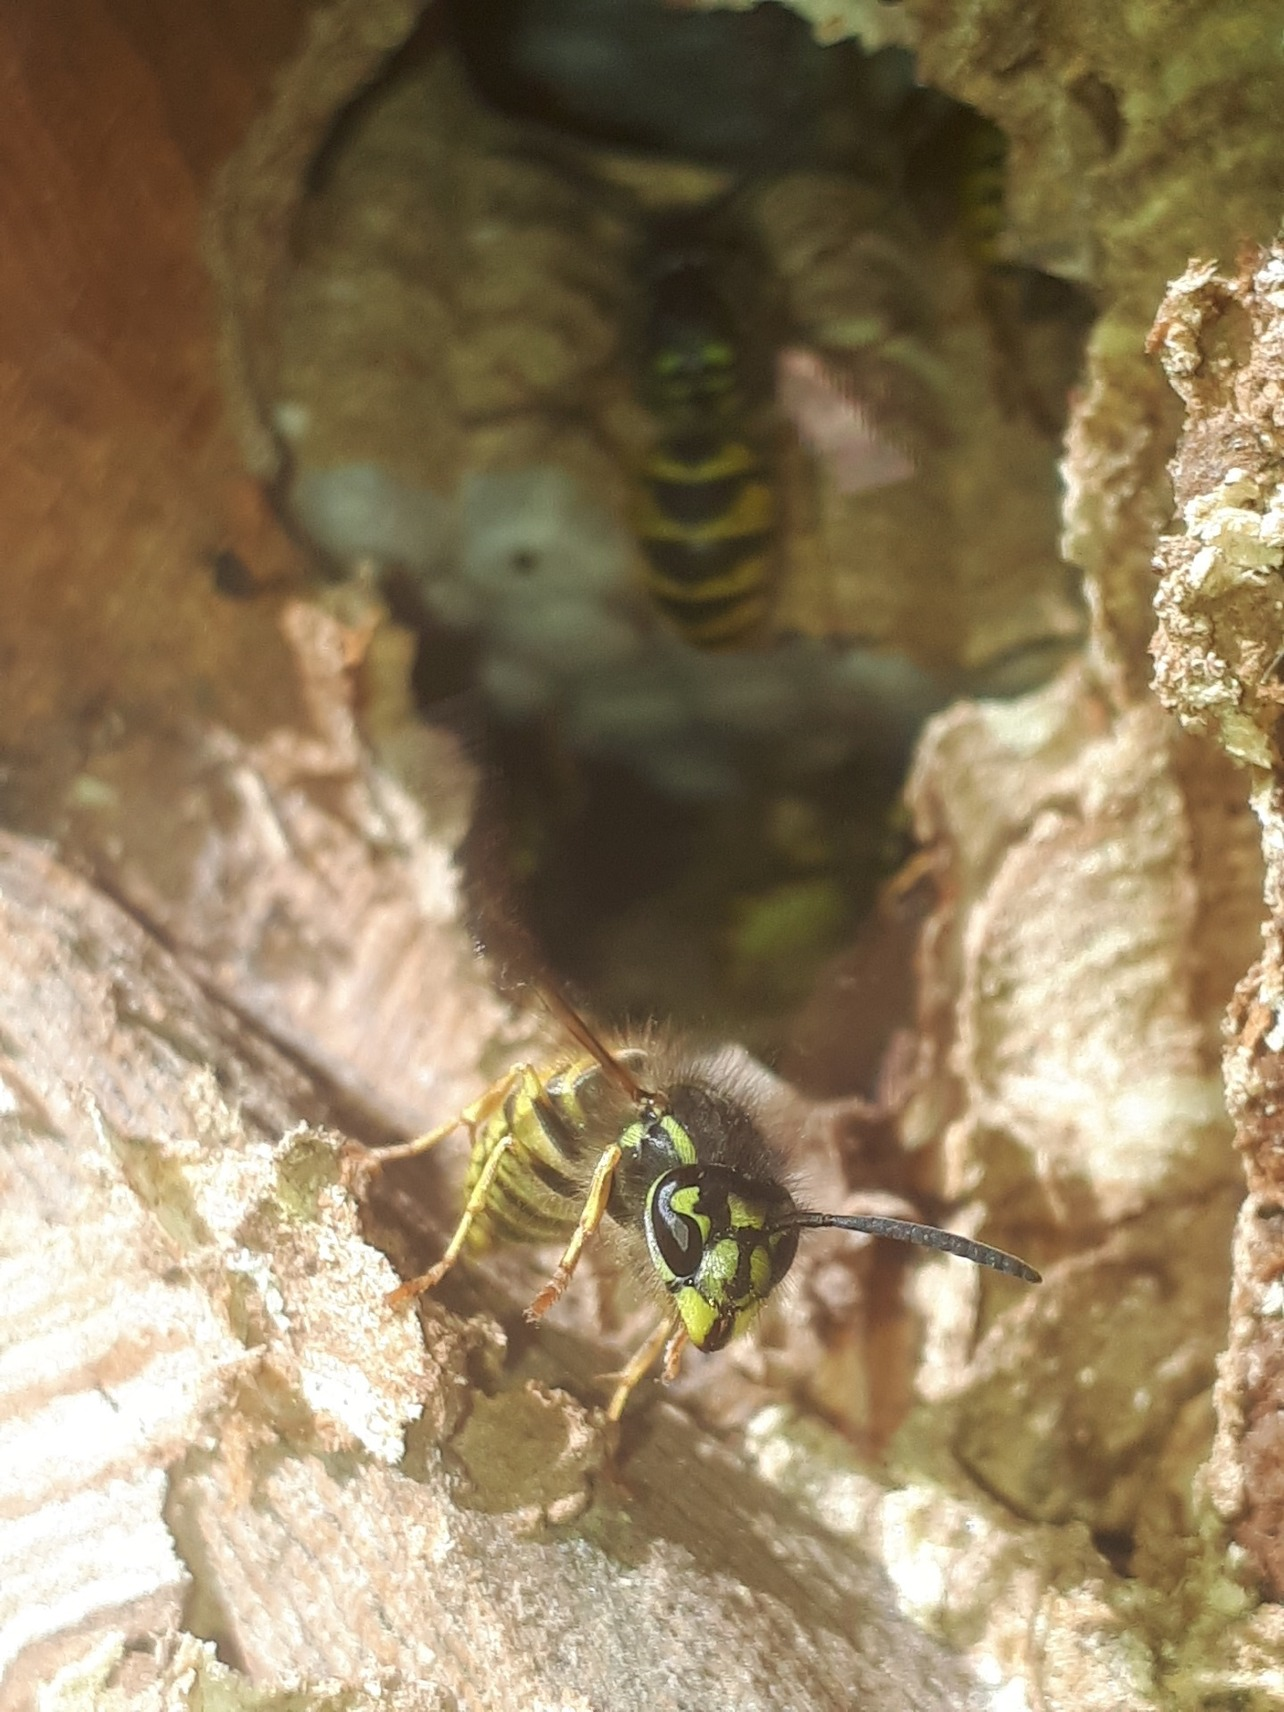 Wasps in a nest